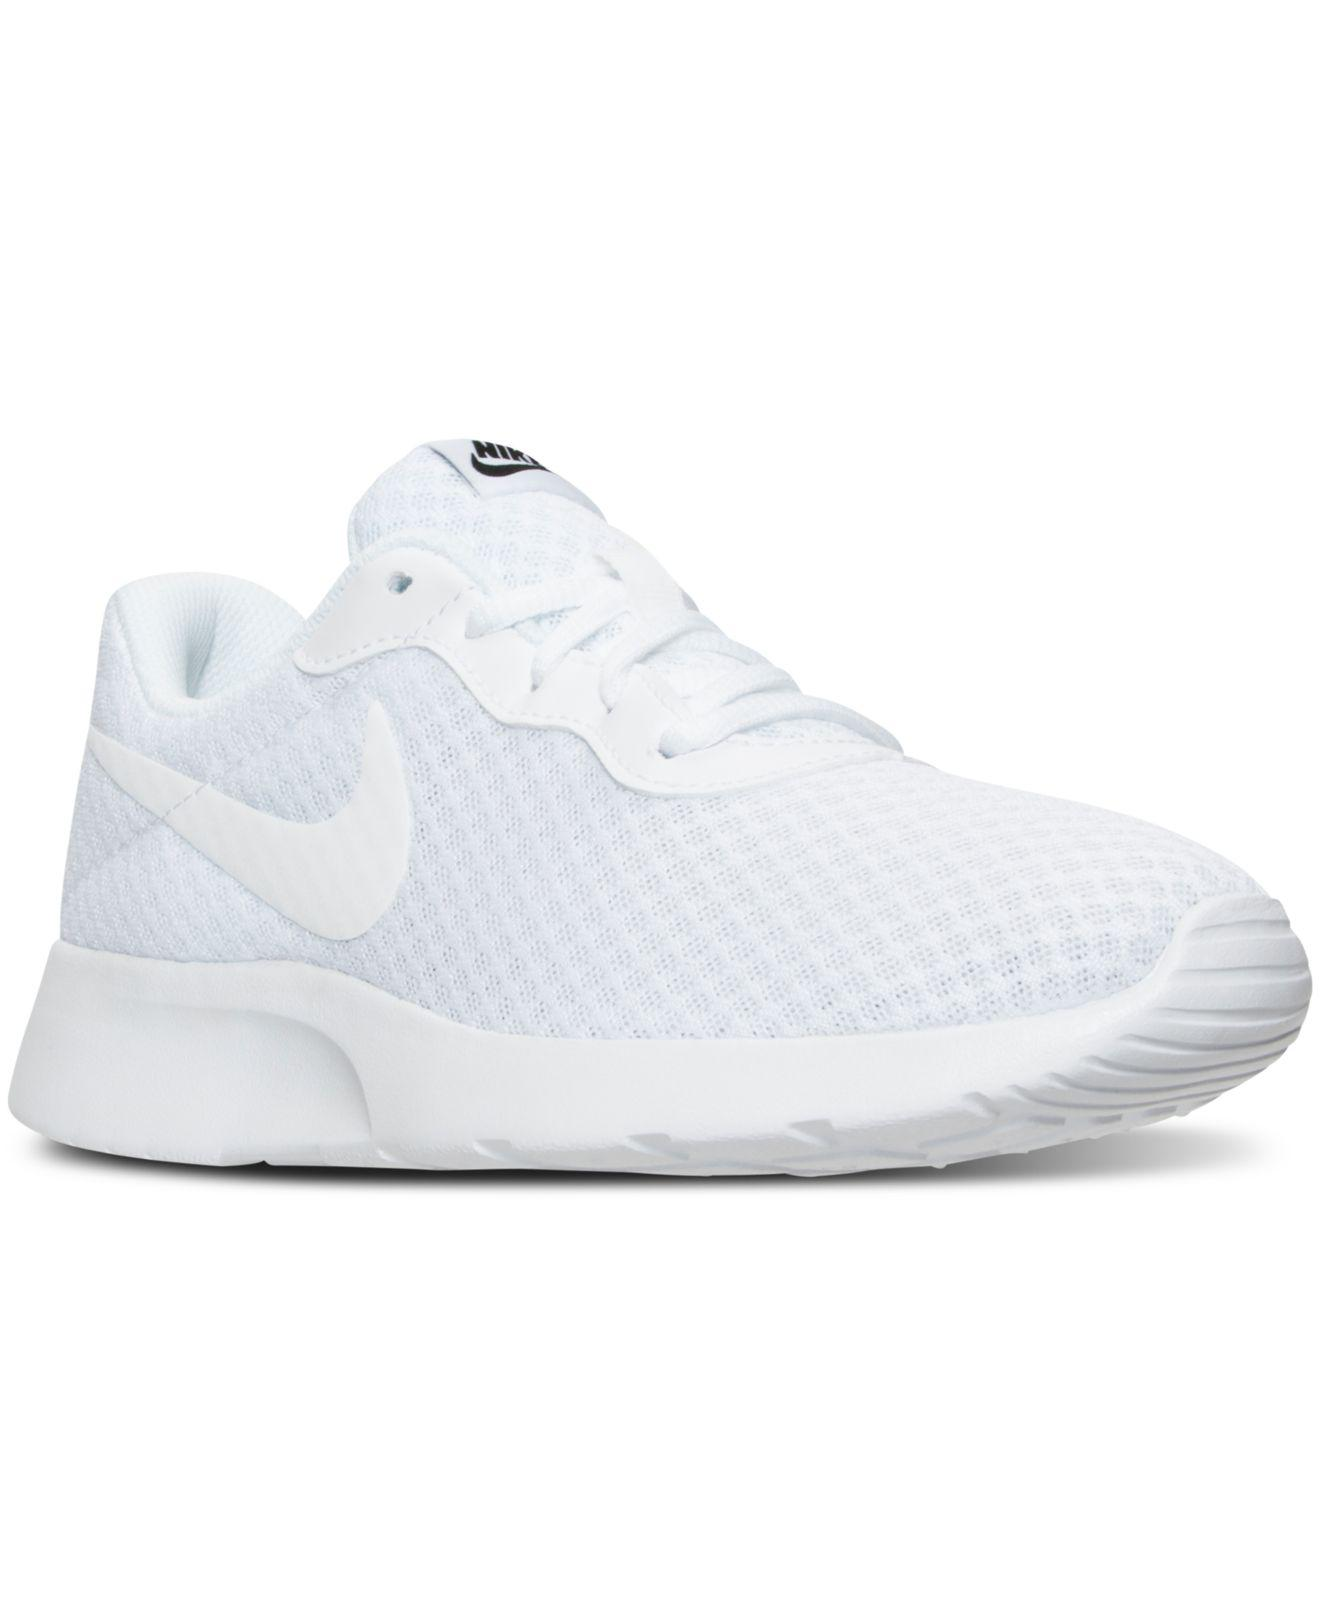 Lyst - Nike Women s Tanjun Casual Sneakers From Finish Line in White a1a86980f